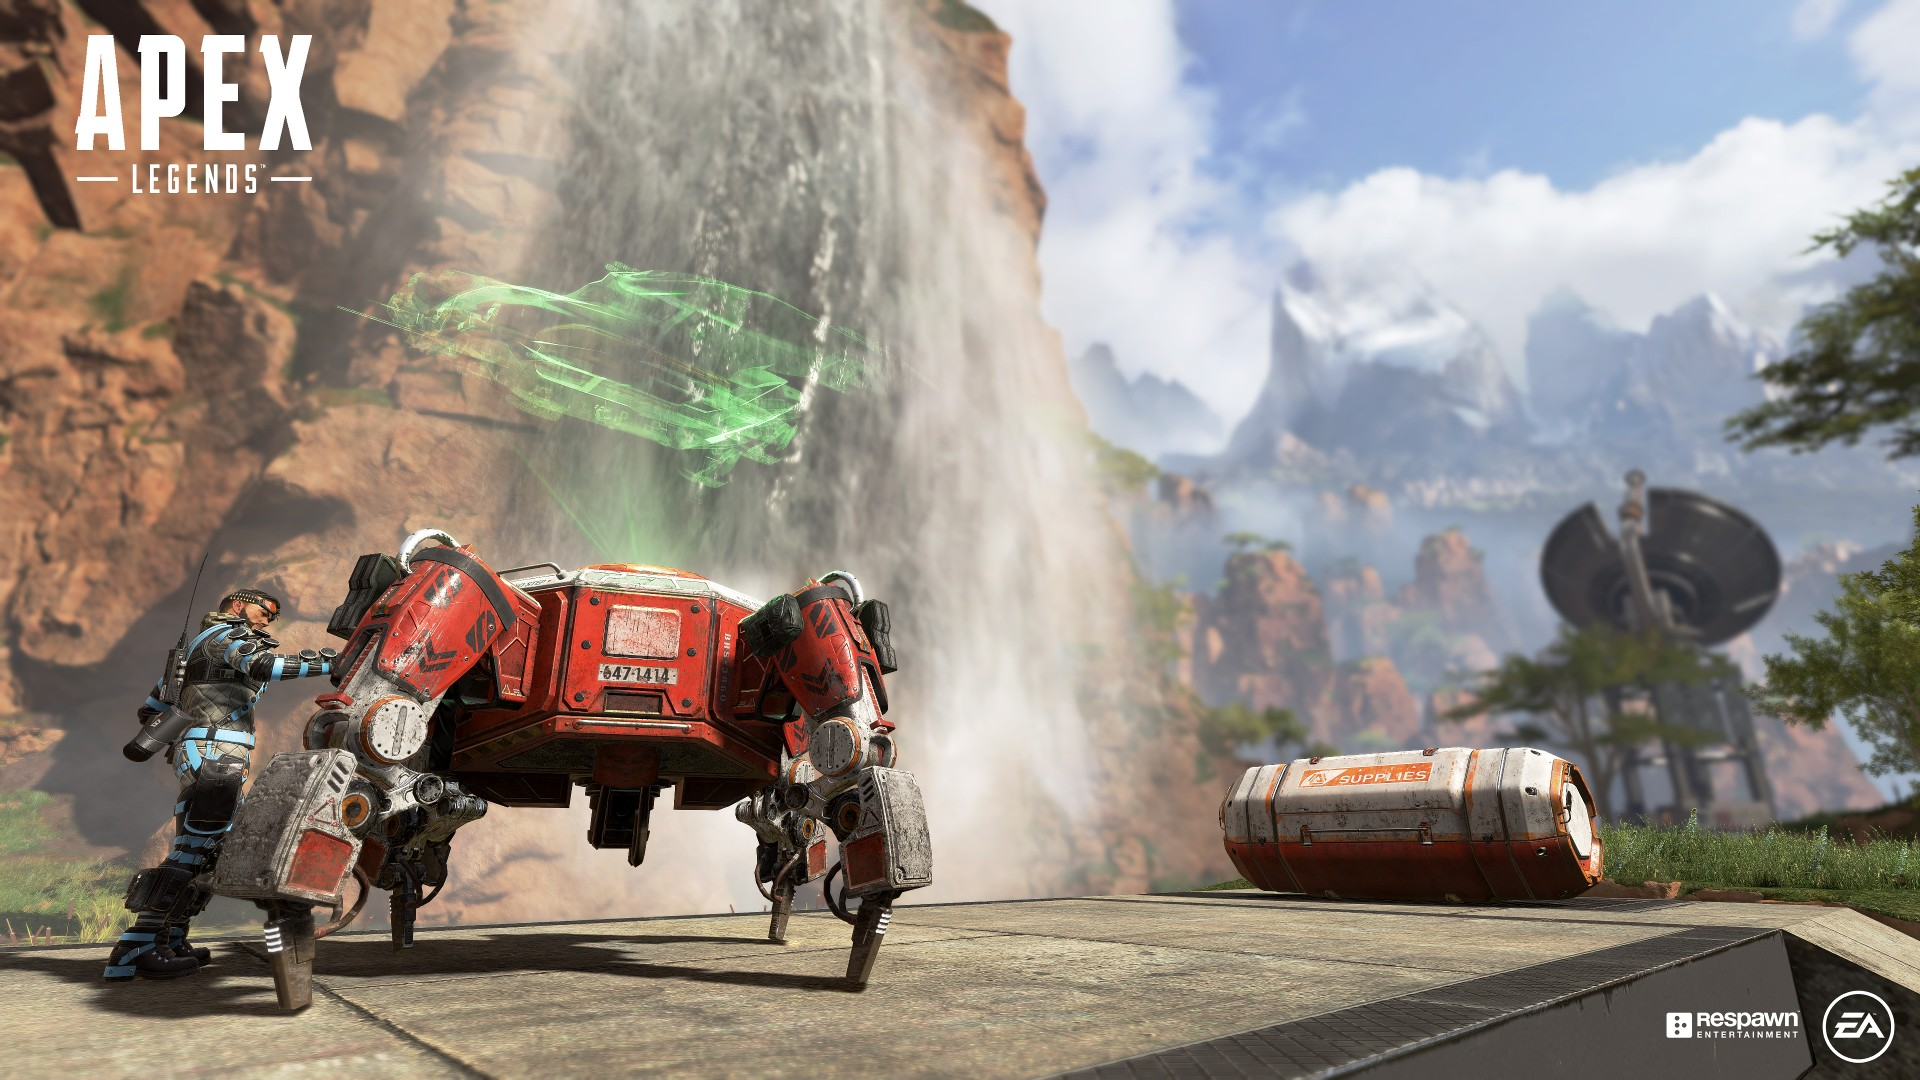 Respawn Address EA's Business Practices When Promoting Apex Legends